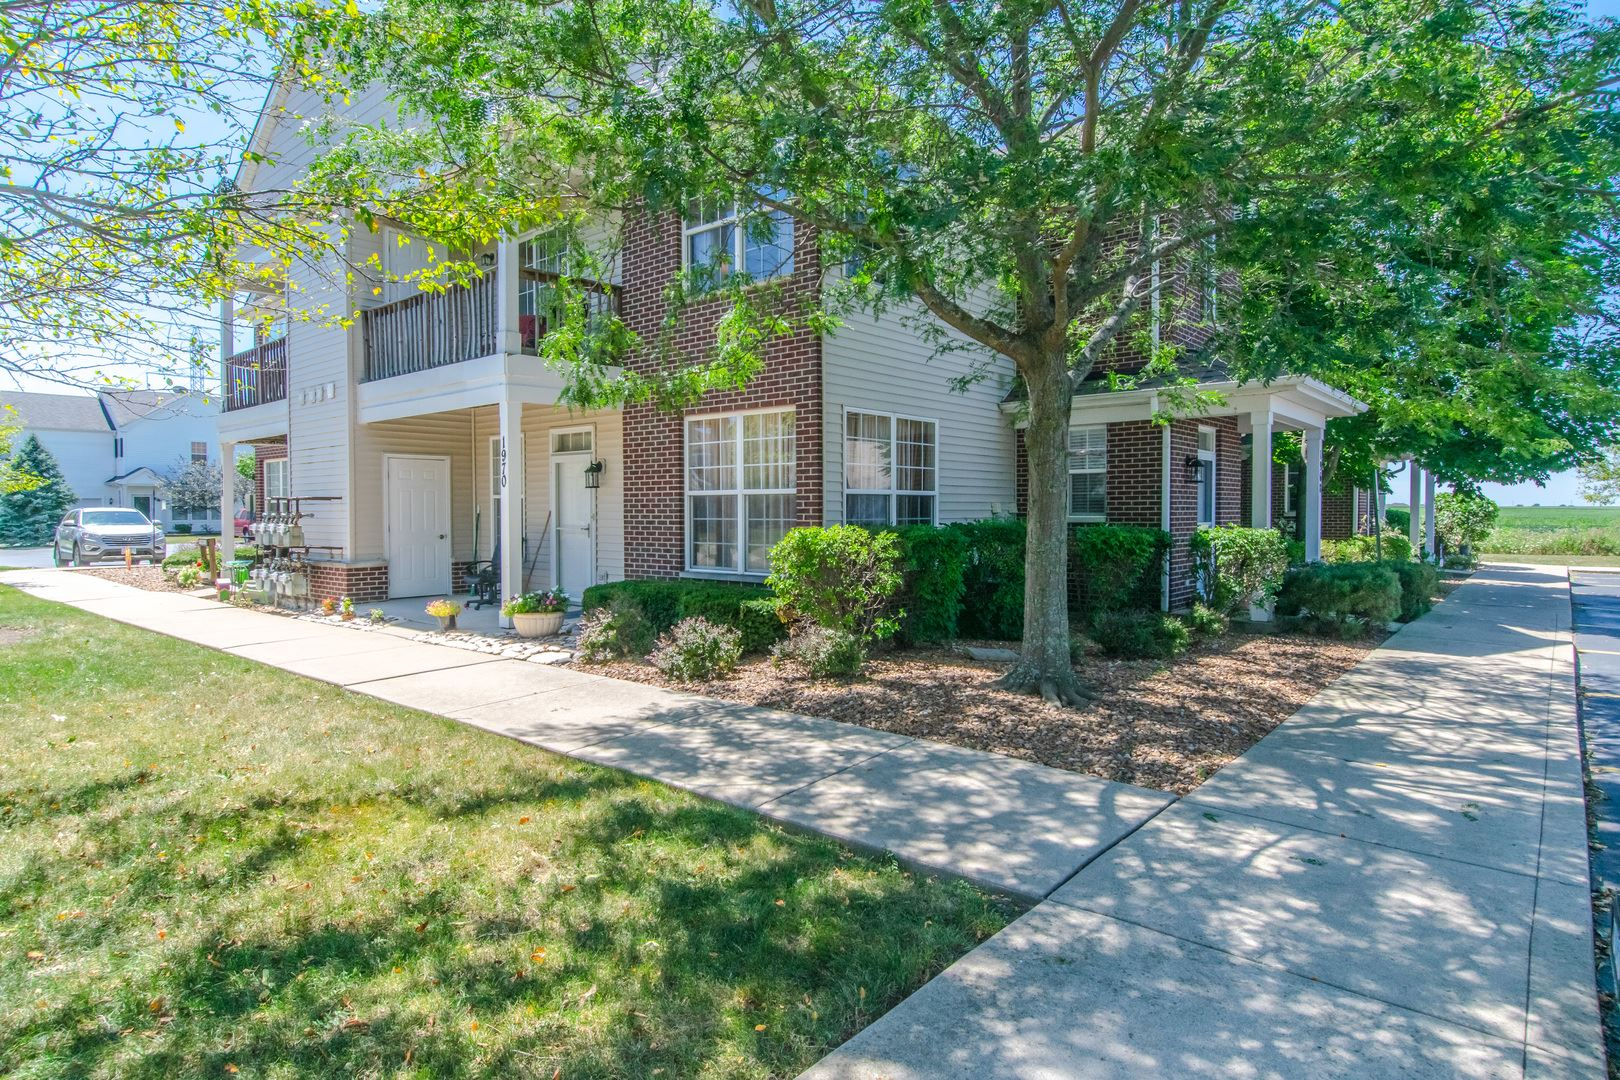 Photo of 1968 Parkside Drive #1968, Shorewood, IL 60404 (MLS # 10818459)